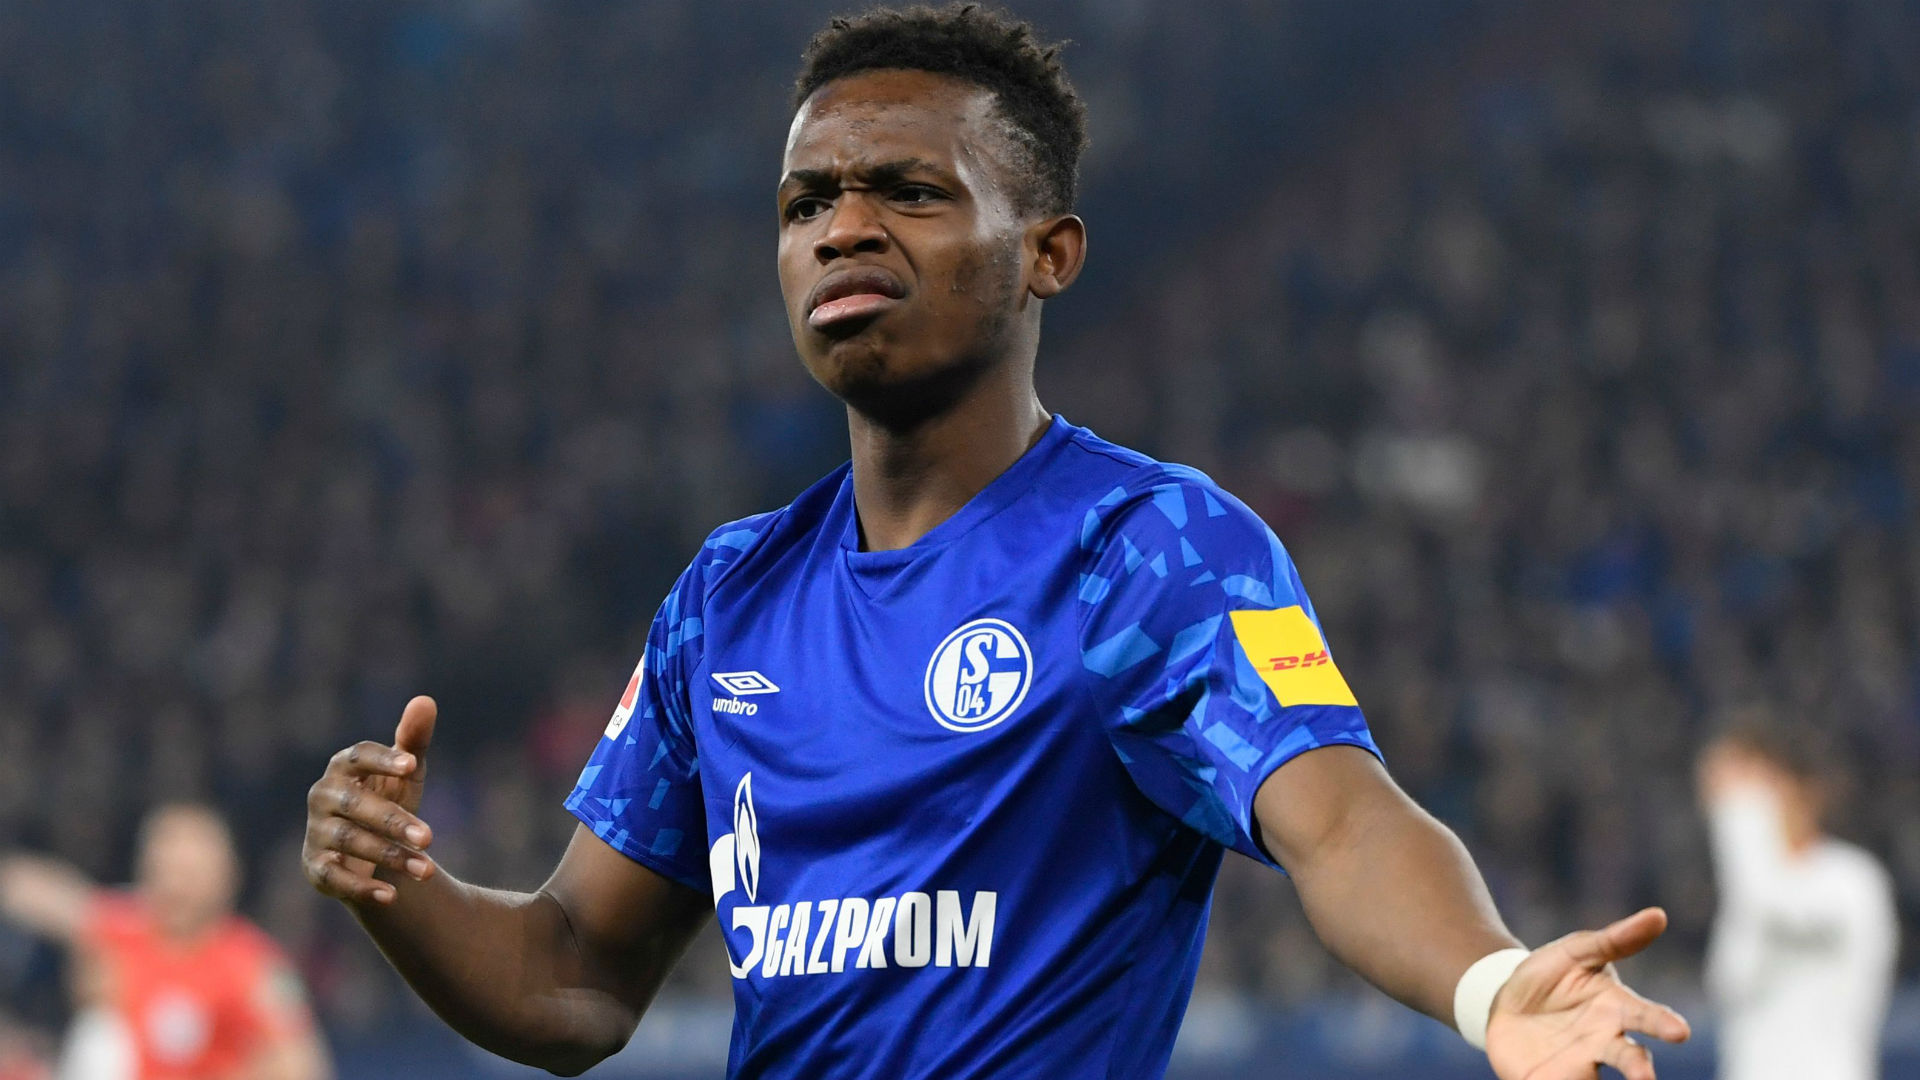 'Liverpool, Chelsea & Tottenham wanted me' - Matondo reveals why he opted for Man City before Schalke move